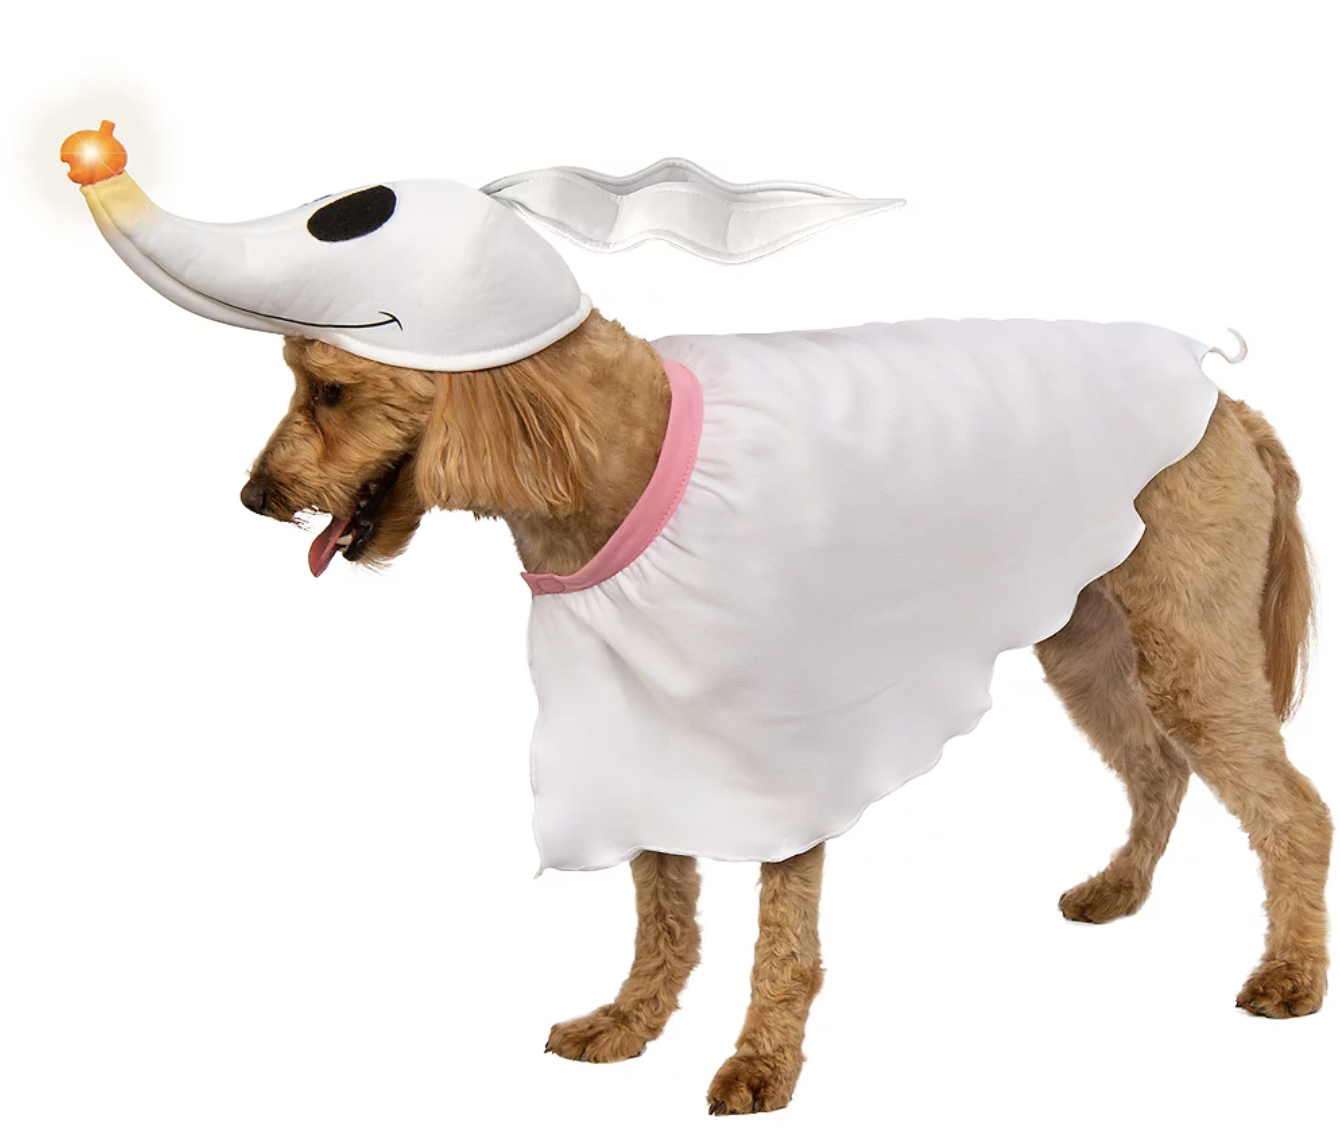 a dog wearing a hat that looks like zero's head from the nightmare before christmas and a ghostlike shirt